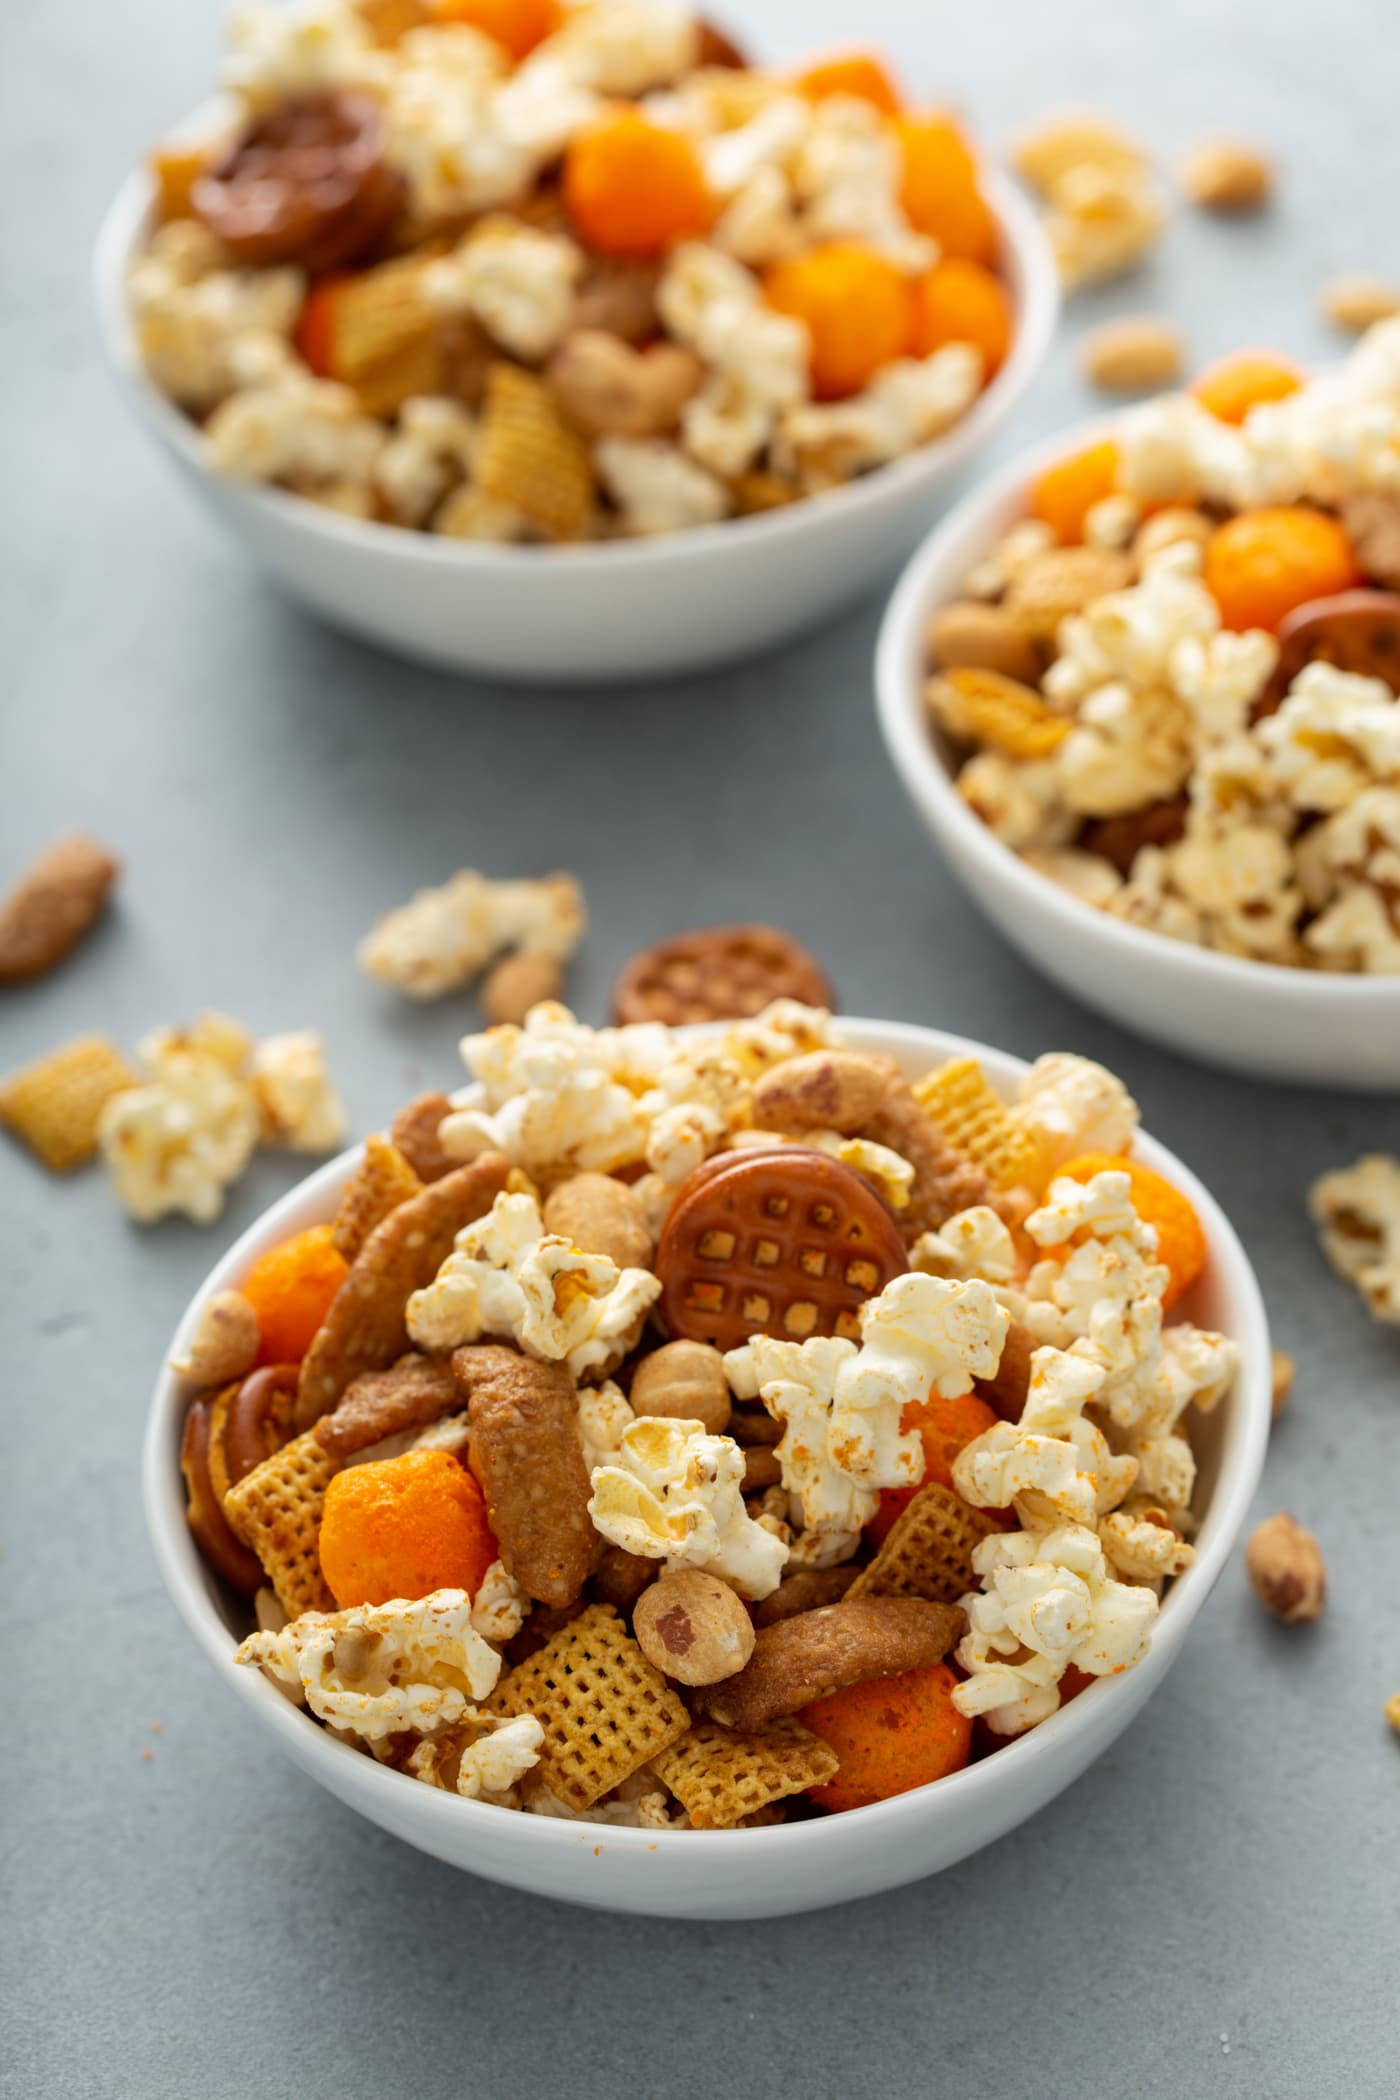 Three bowls of March madness snack mix. It contains popcorn, peanuts, chex, pretzels and sesame sticks.